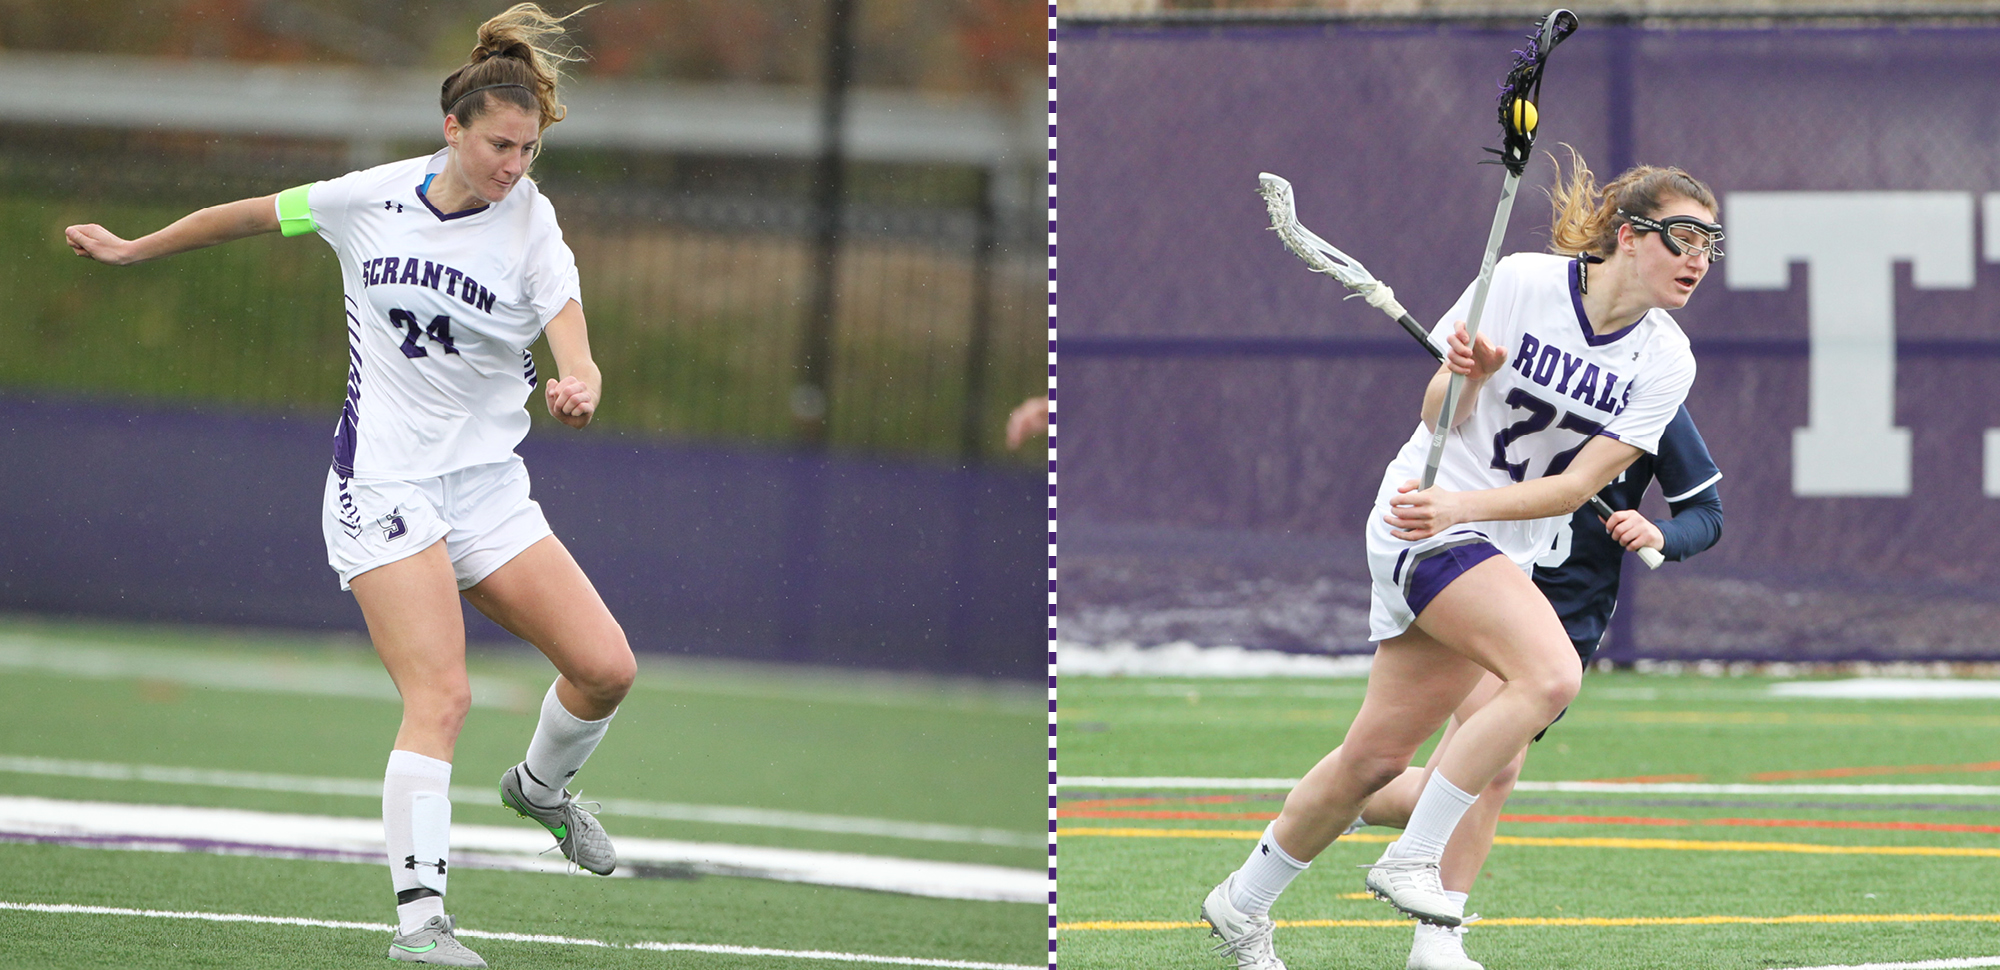 Senior Becca Russo became the first student-athlete in Scranton history to earn All-American honors in two sports in 2018-19. © Photos by Timothy R. Dougherty / doubleeaglephotography.com